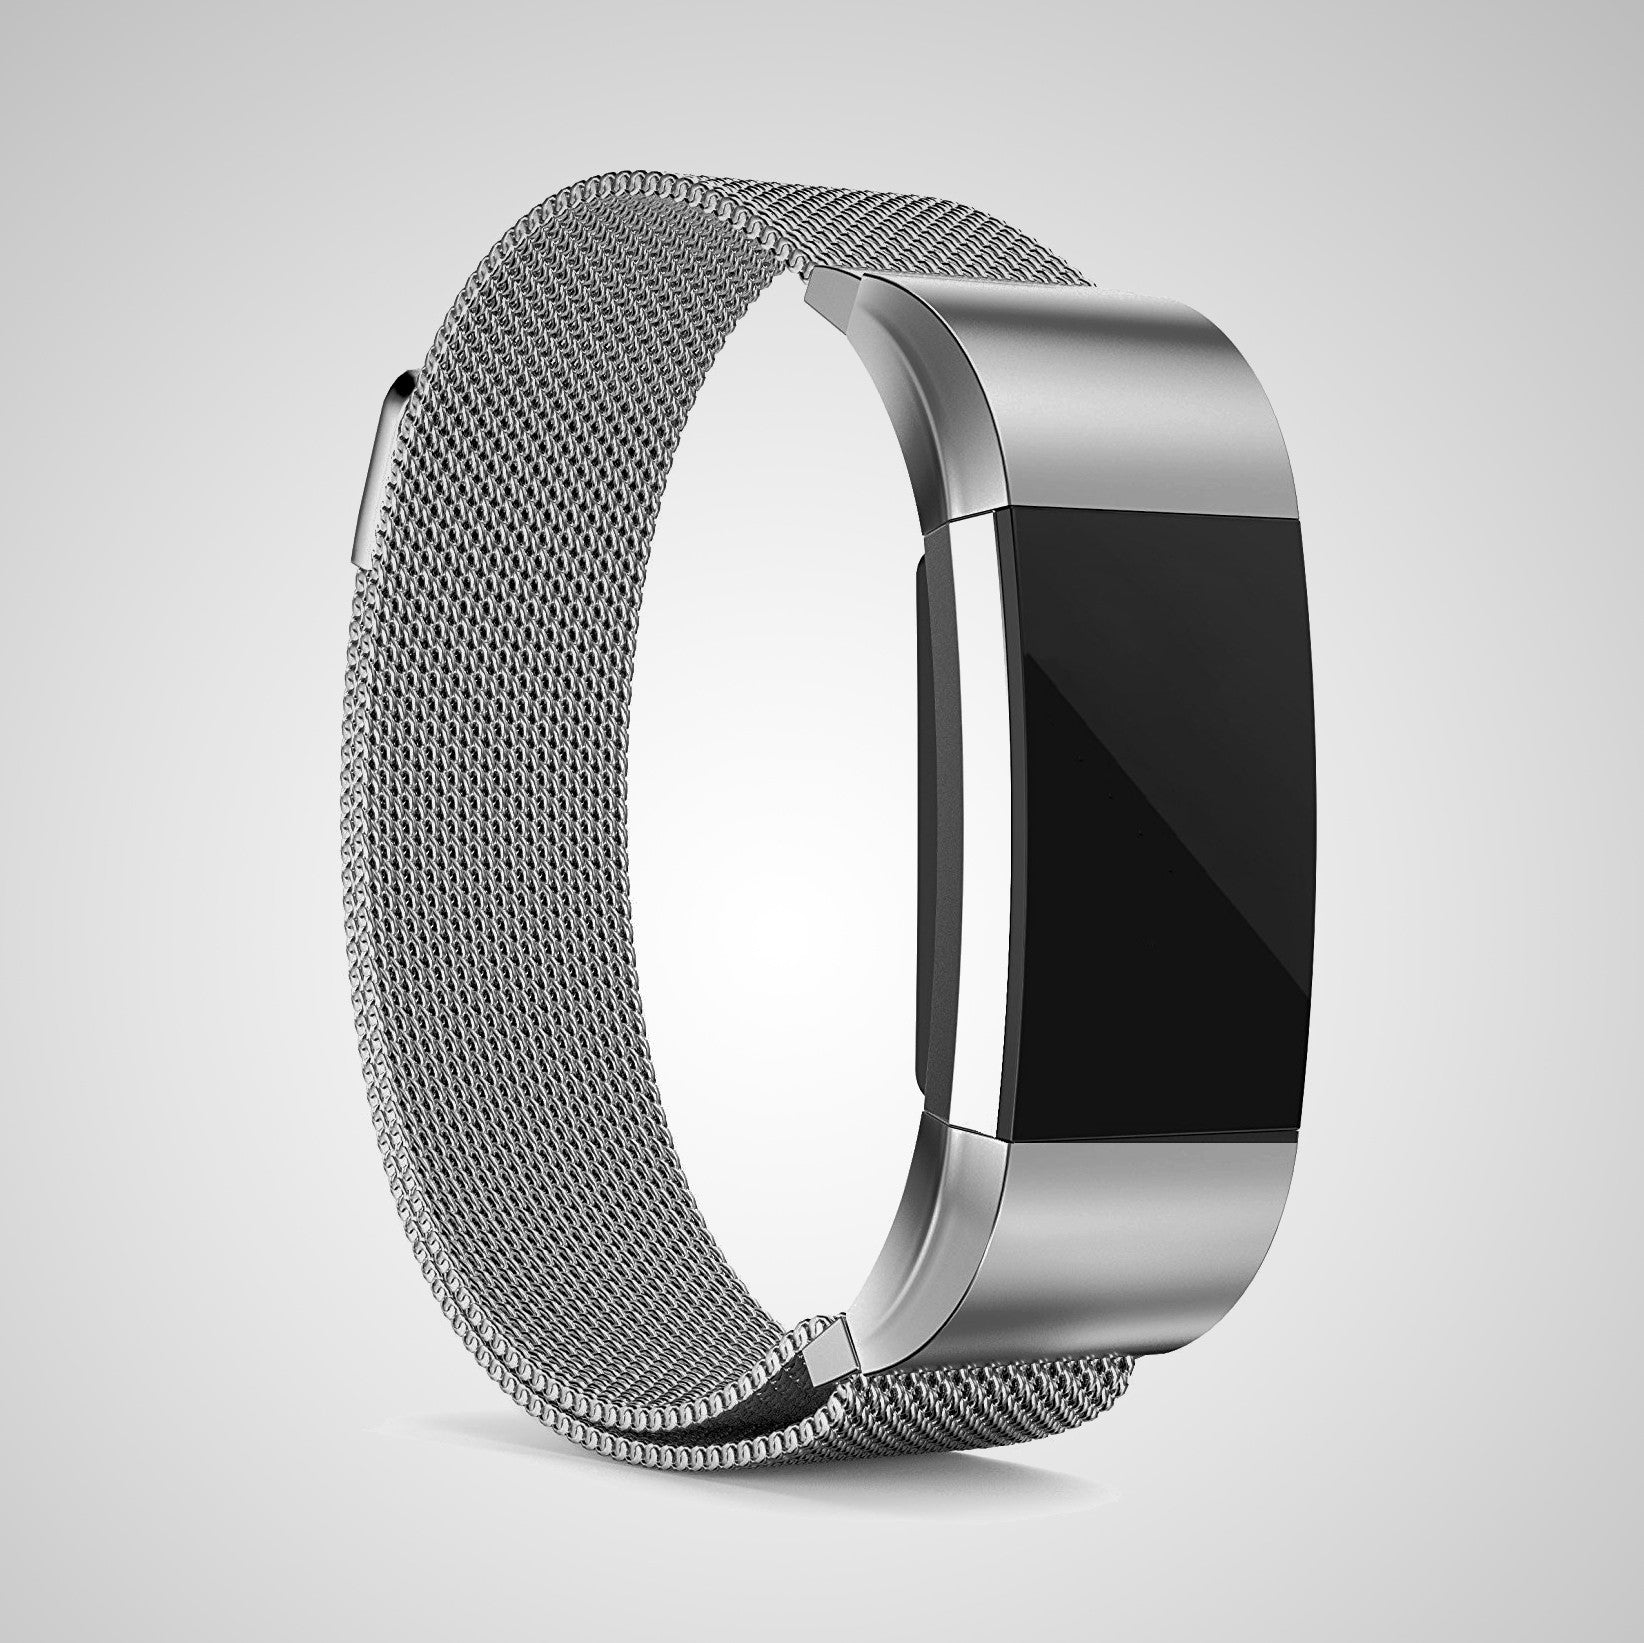 fitbit charge 2 bands silver edition